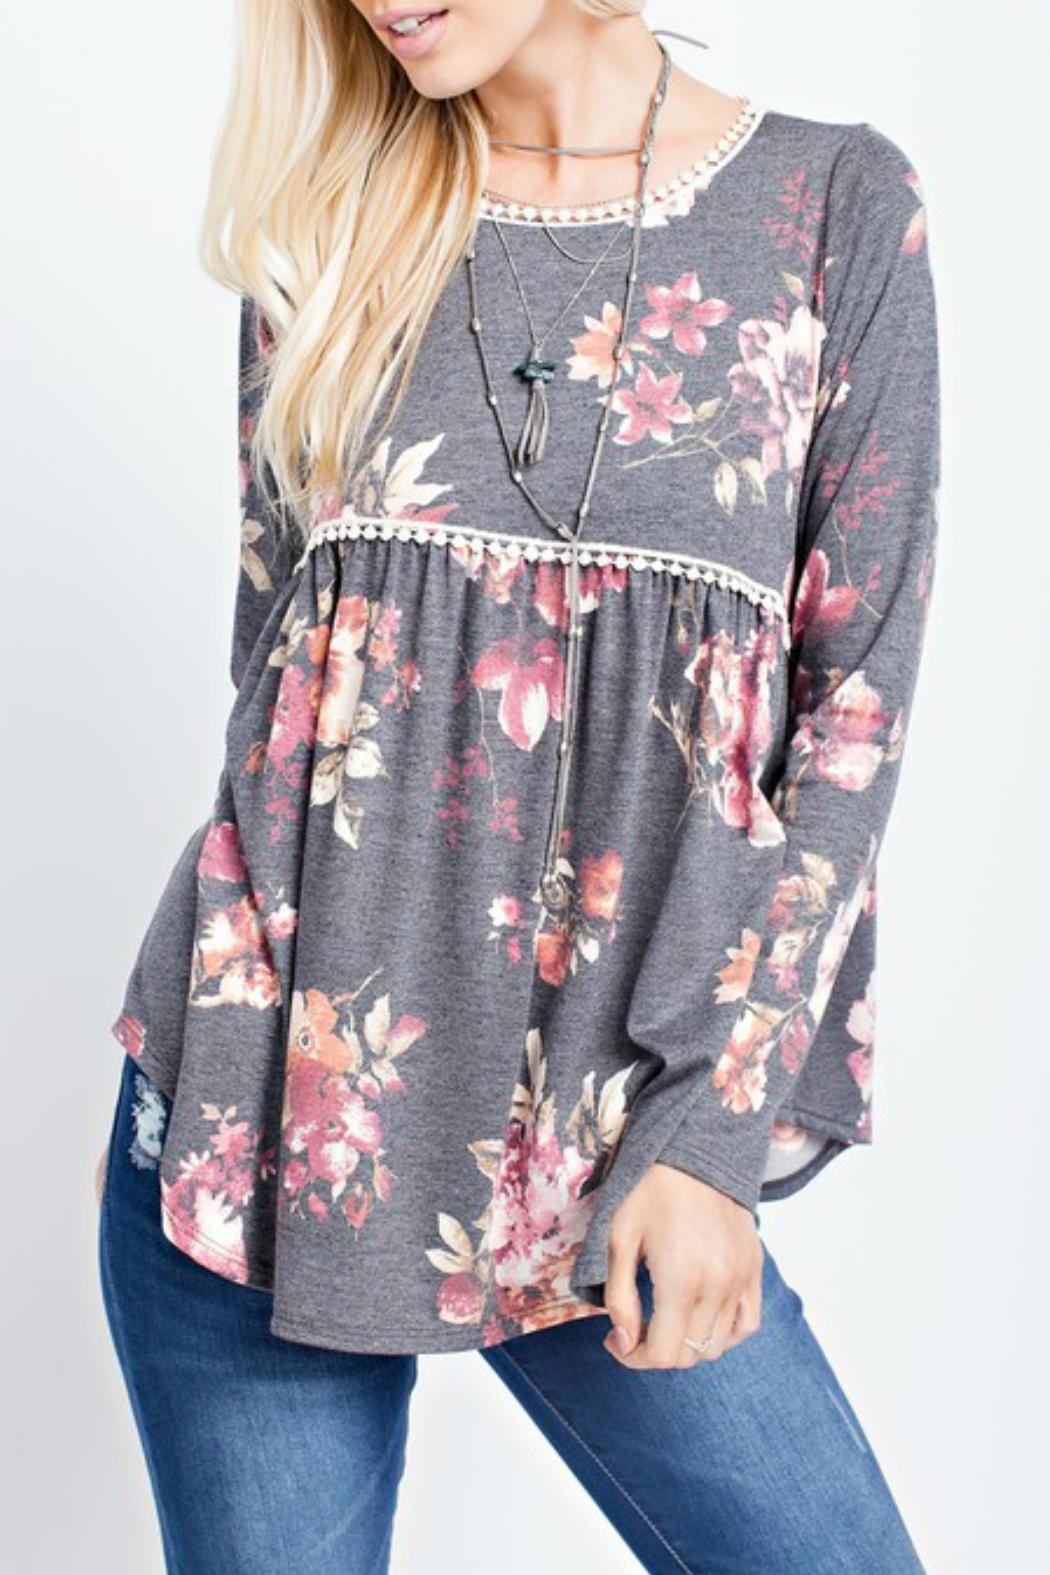 143 Story Floral Babydoll Top - Main Image